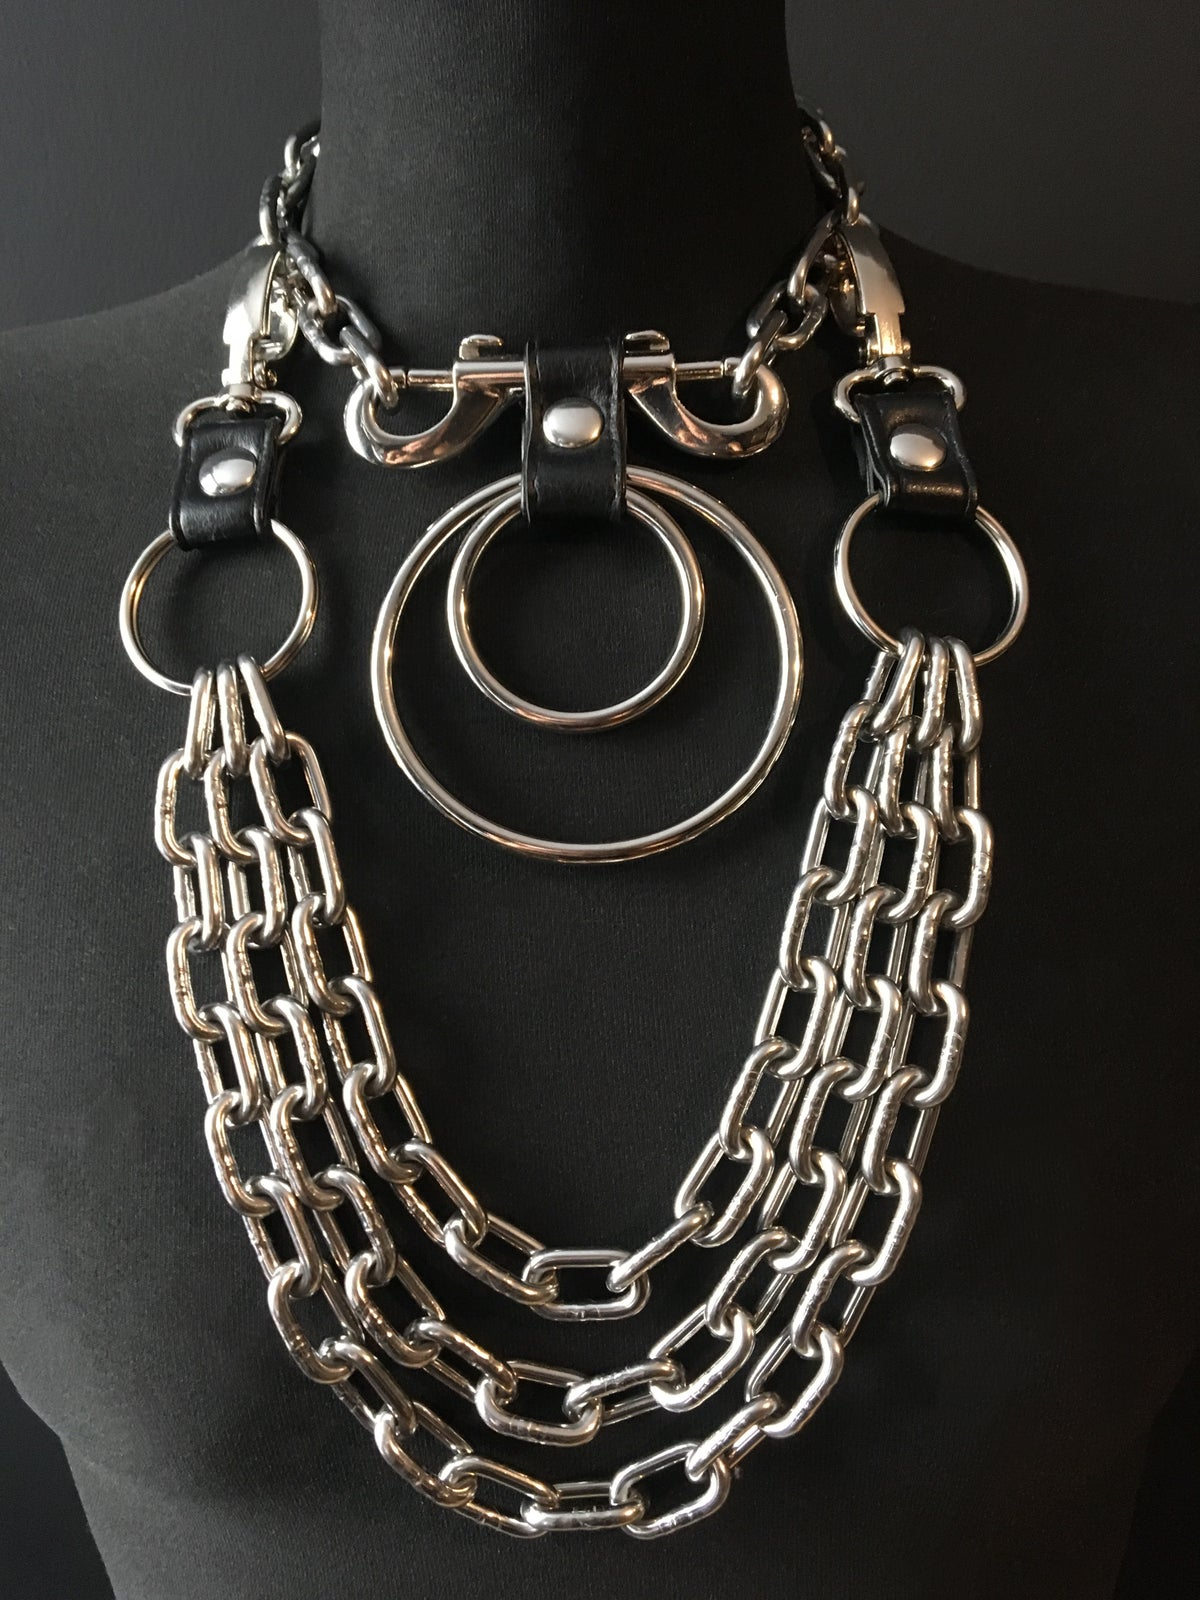 Double ring necklace silver